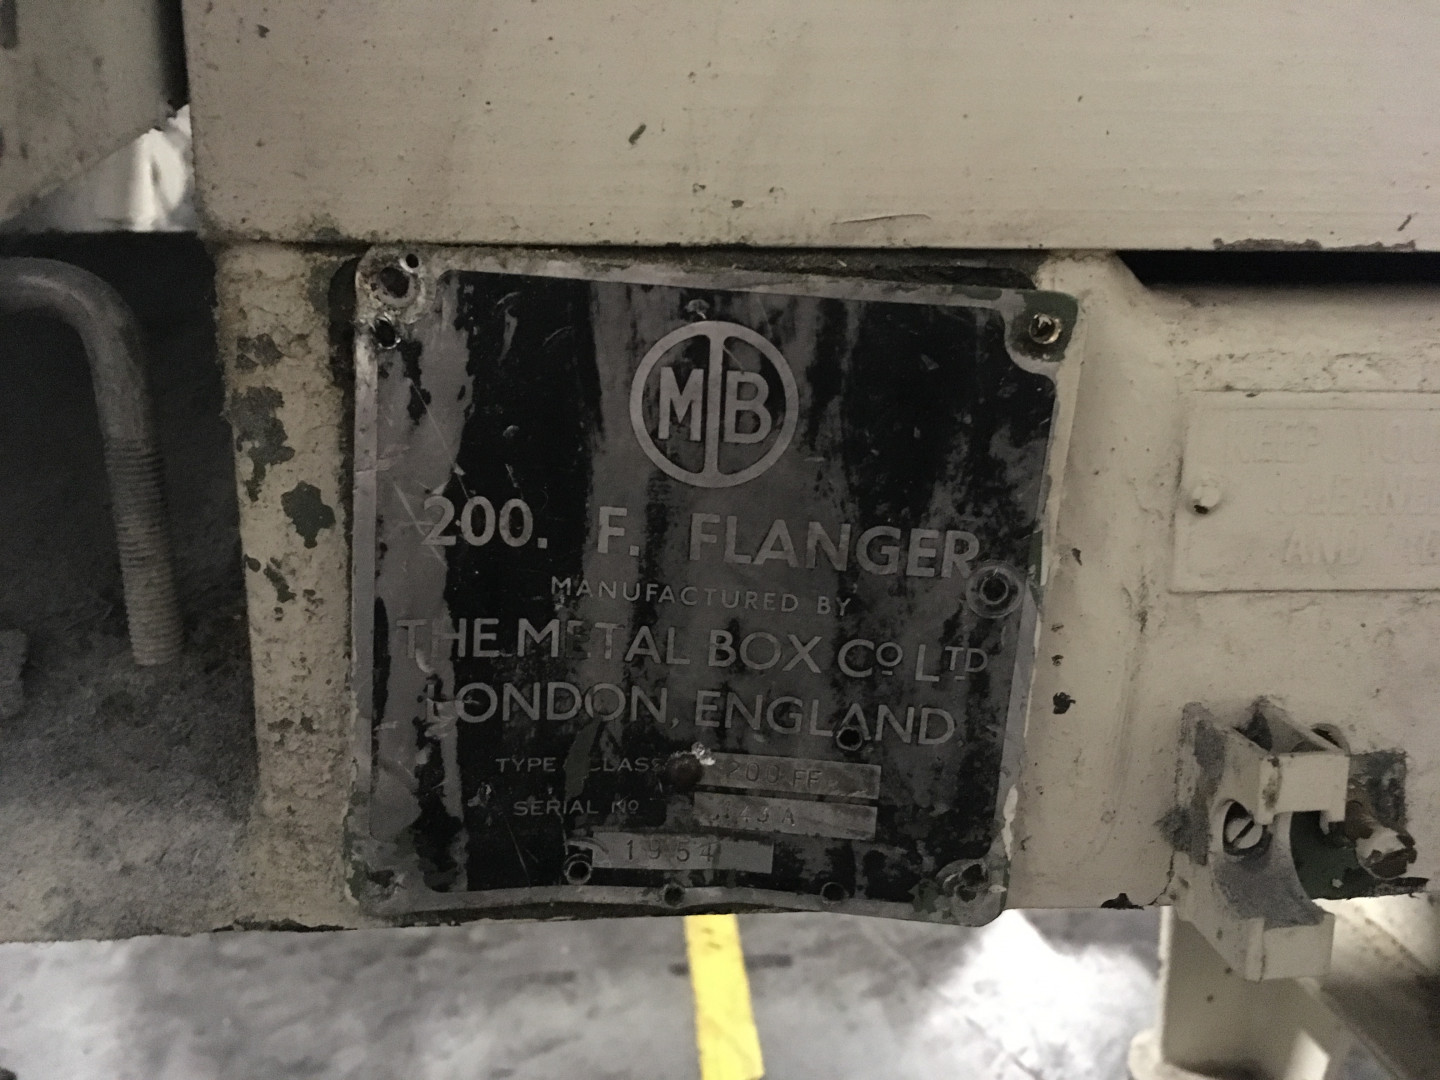 Metal Box 200 F flanger